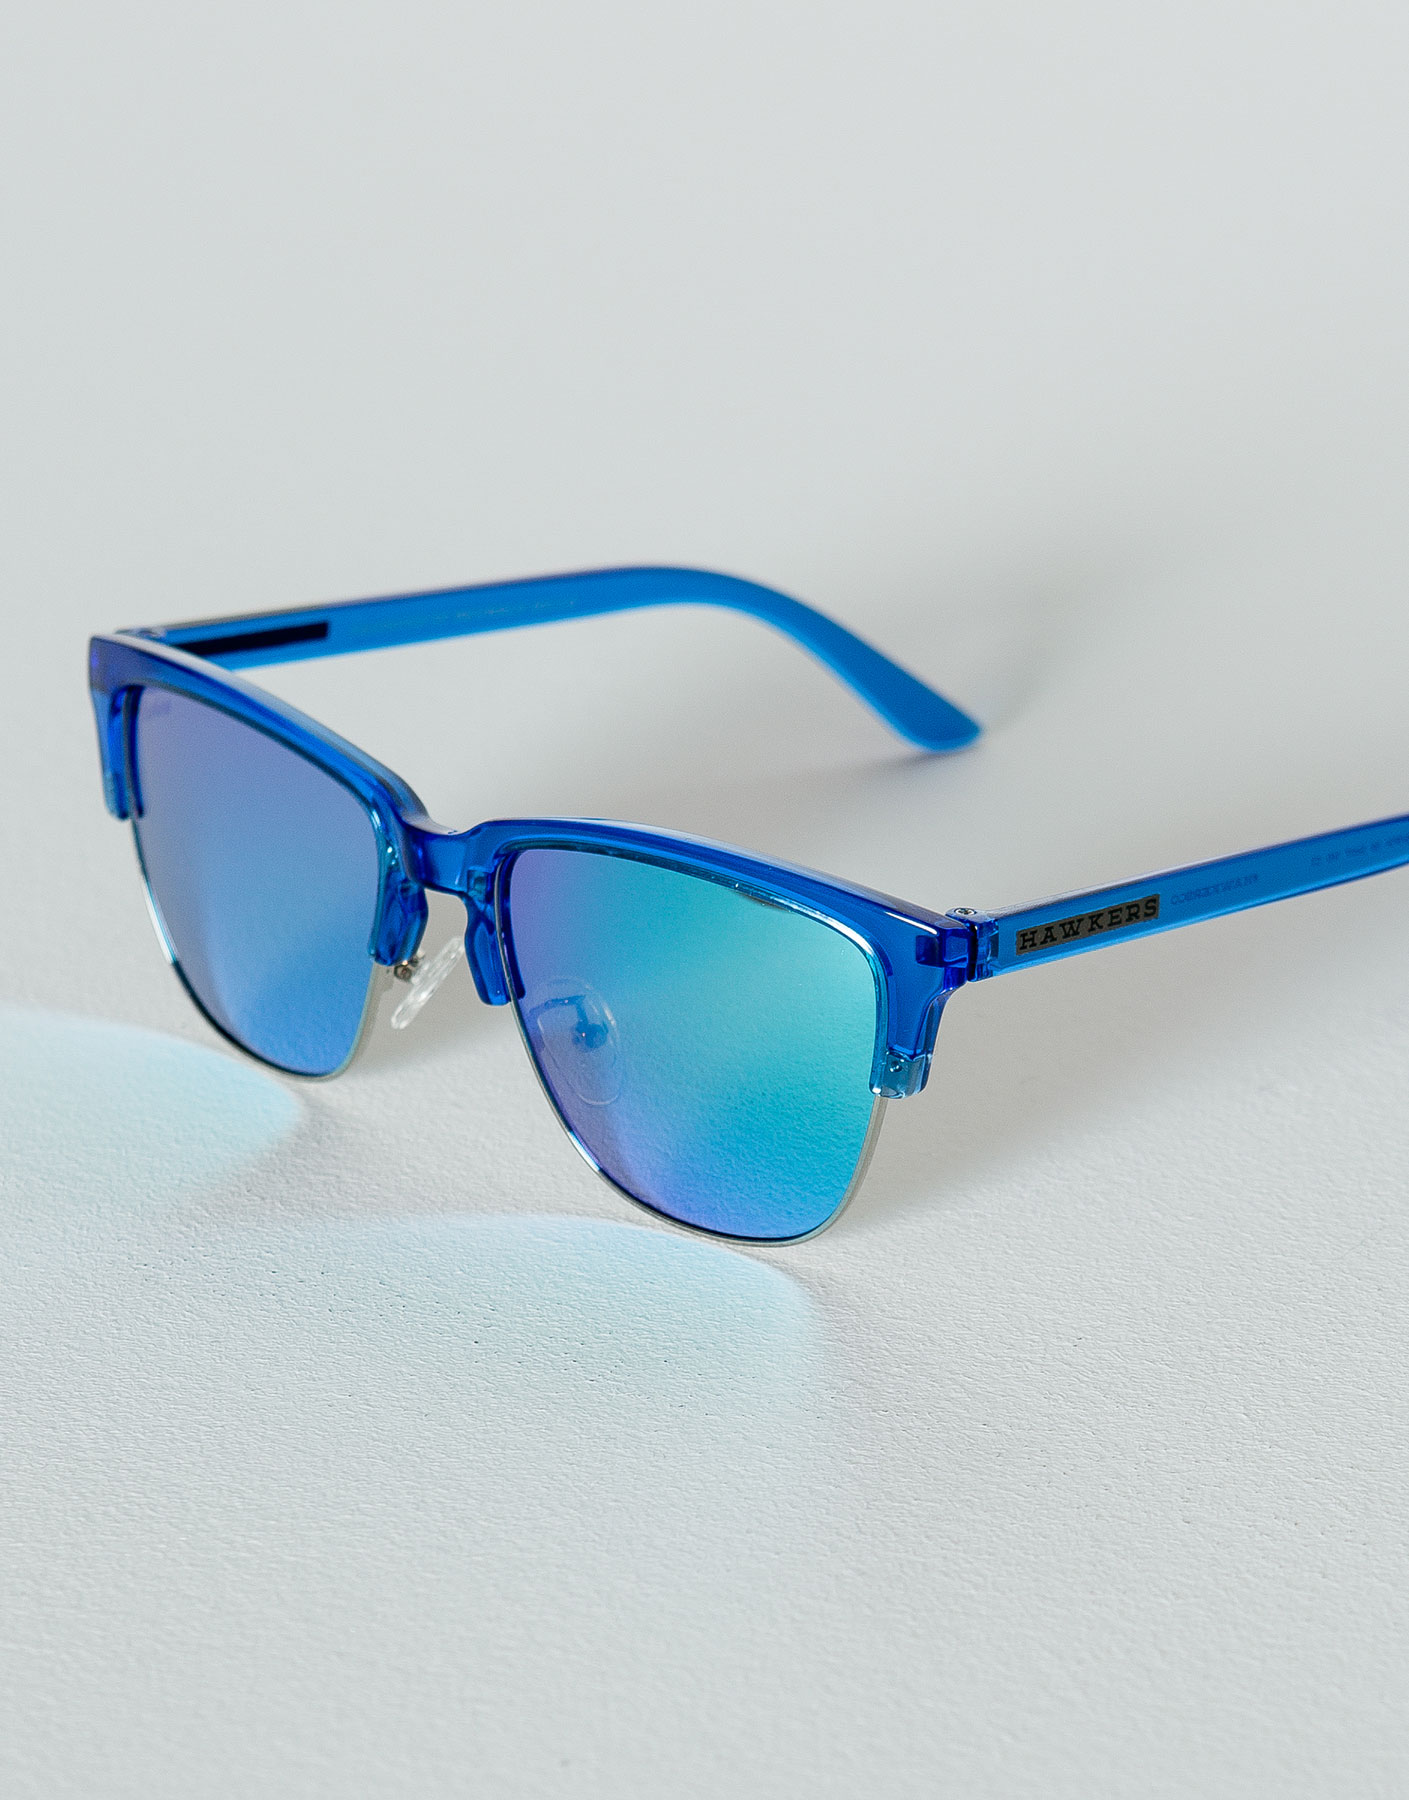 GAFAS DE SOL HAWKERS SEA CLEAR BLUE CLASSIC